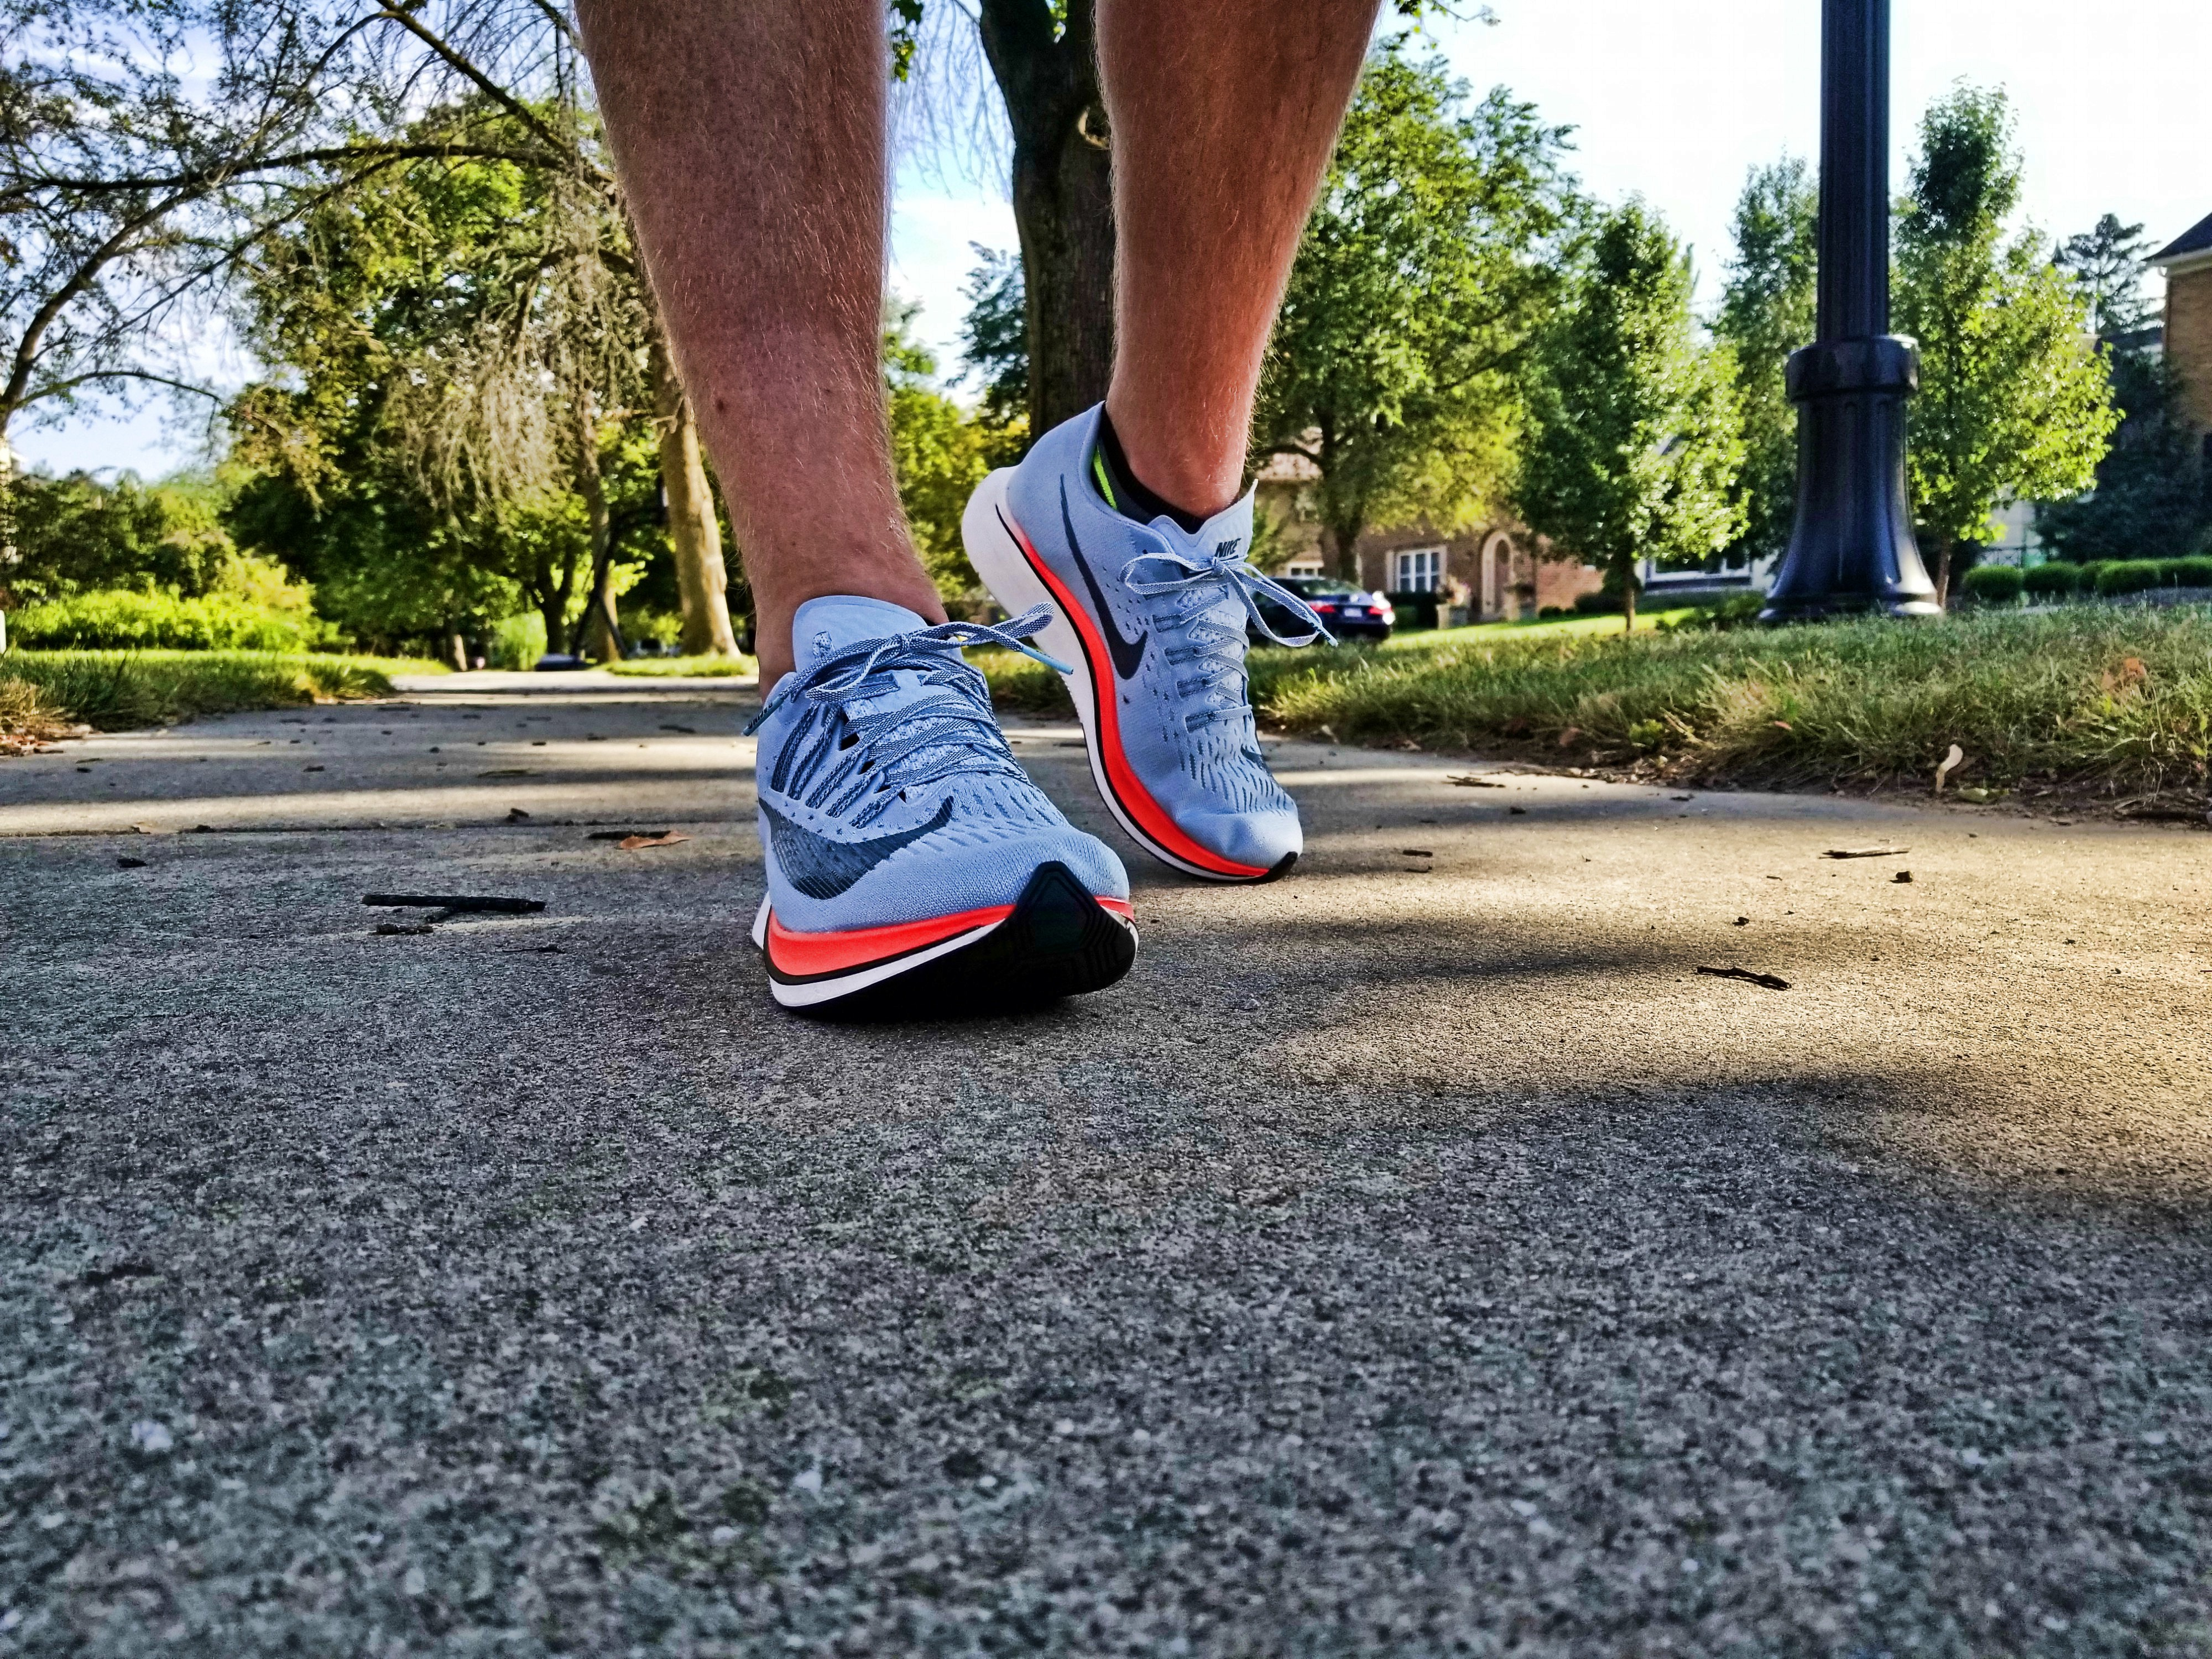 fa44fdf78d8b7 Nike Zoom Fly - Fitness Review